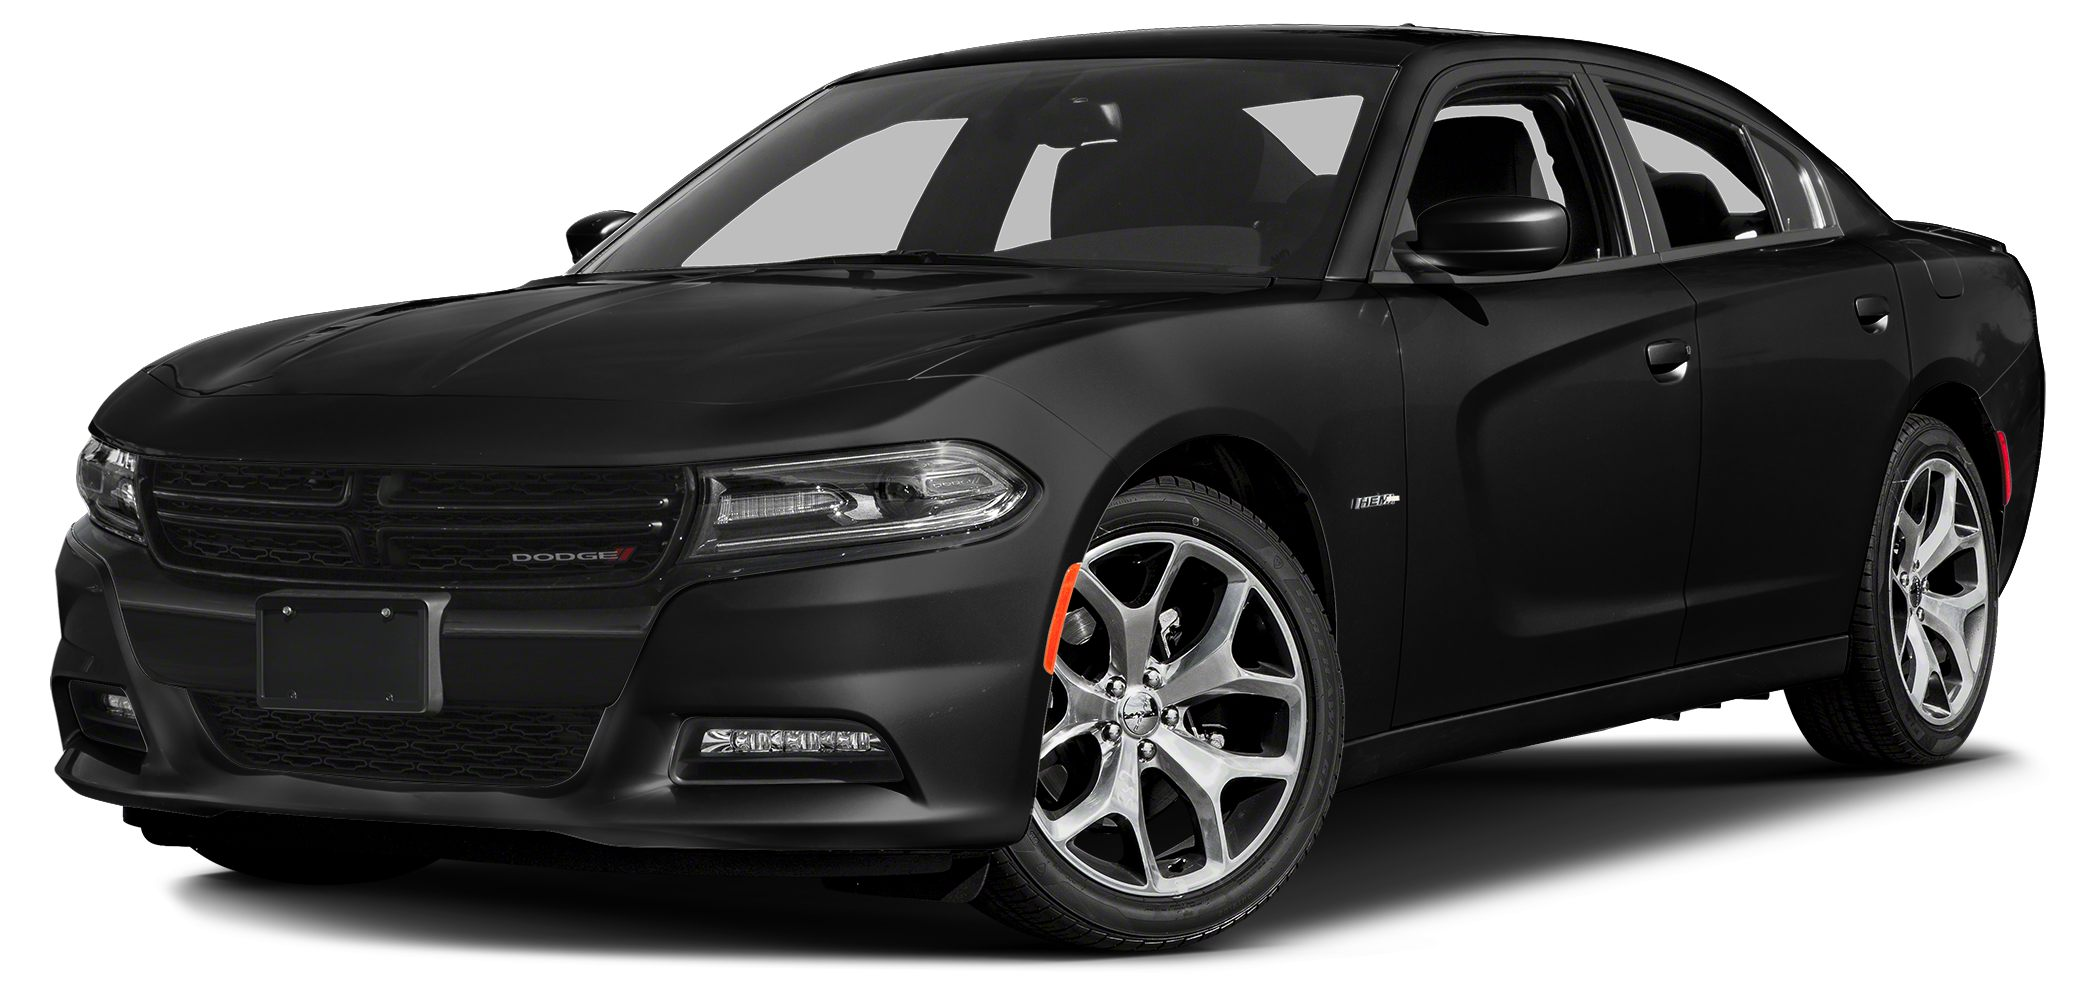 2018 Dodge Charger RT CARFAX One-Owner Clean CARFAX Pitch Black Clearcoat 2018 Dodge Charger R